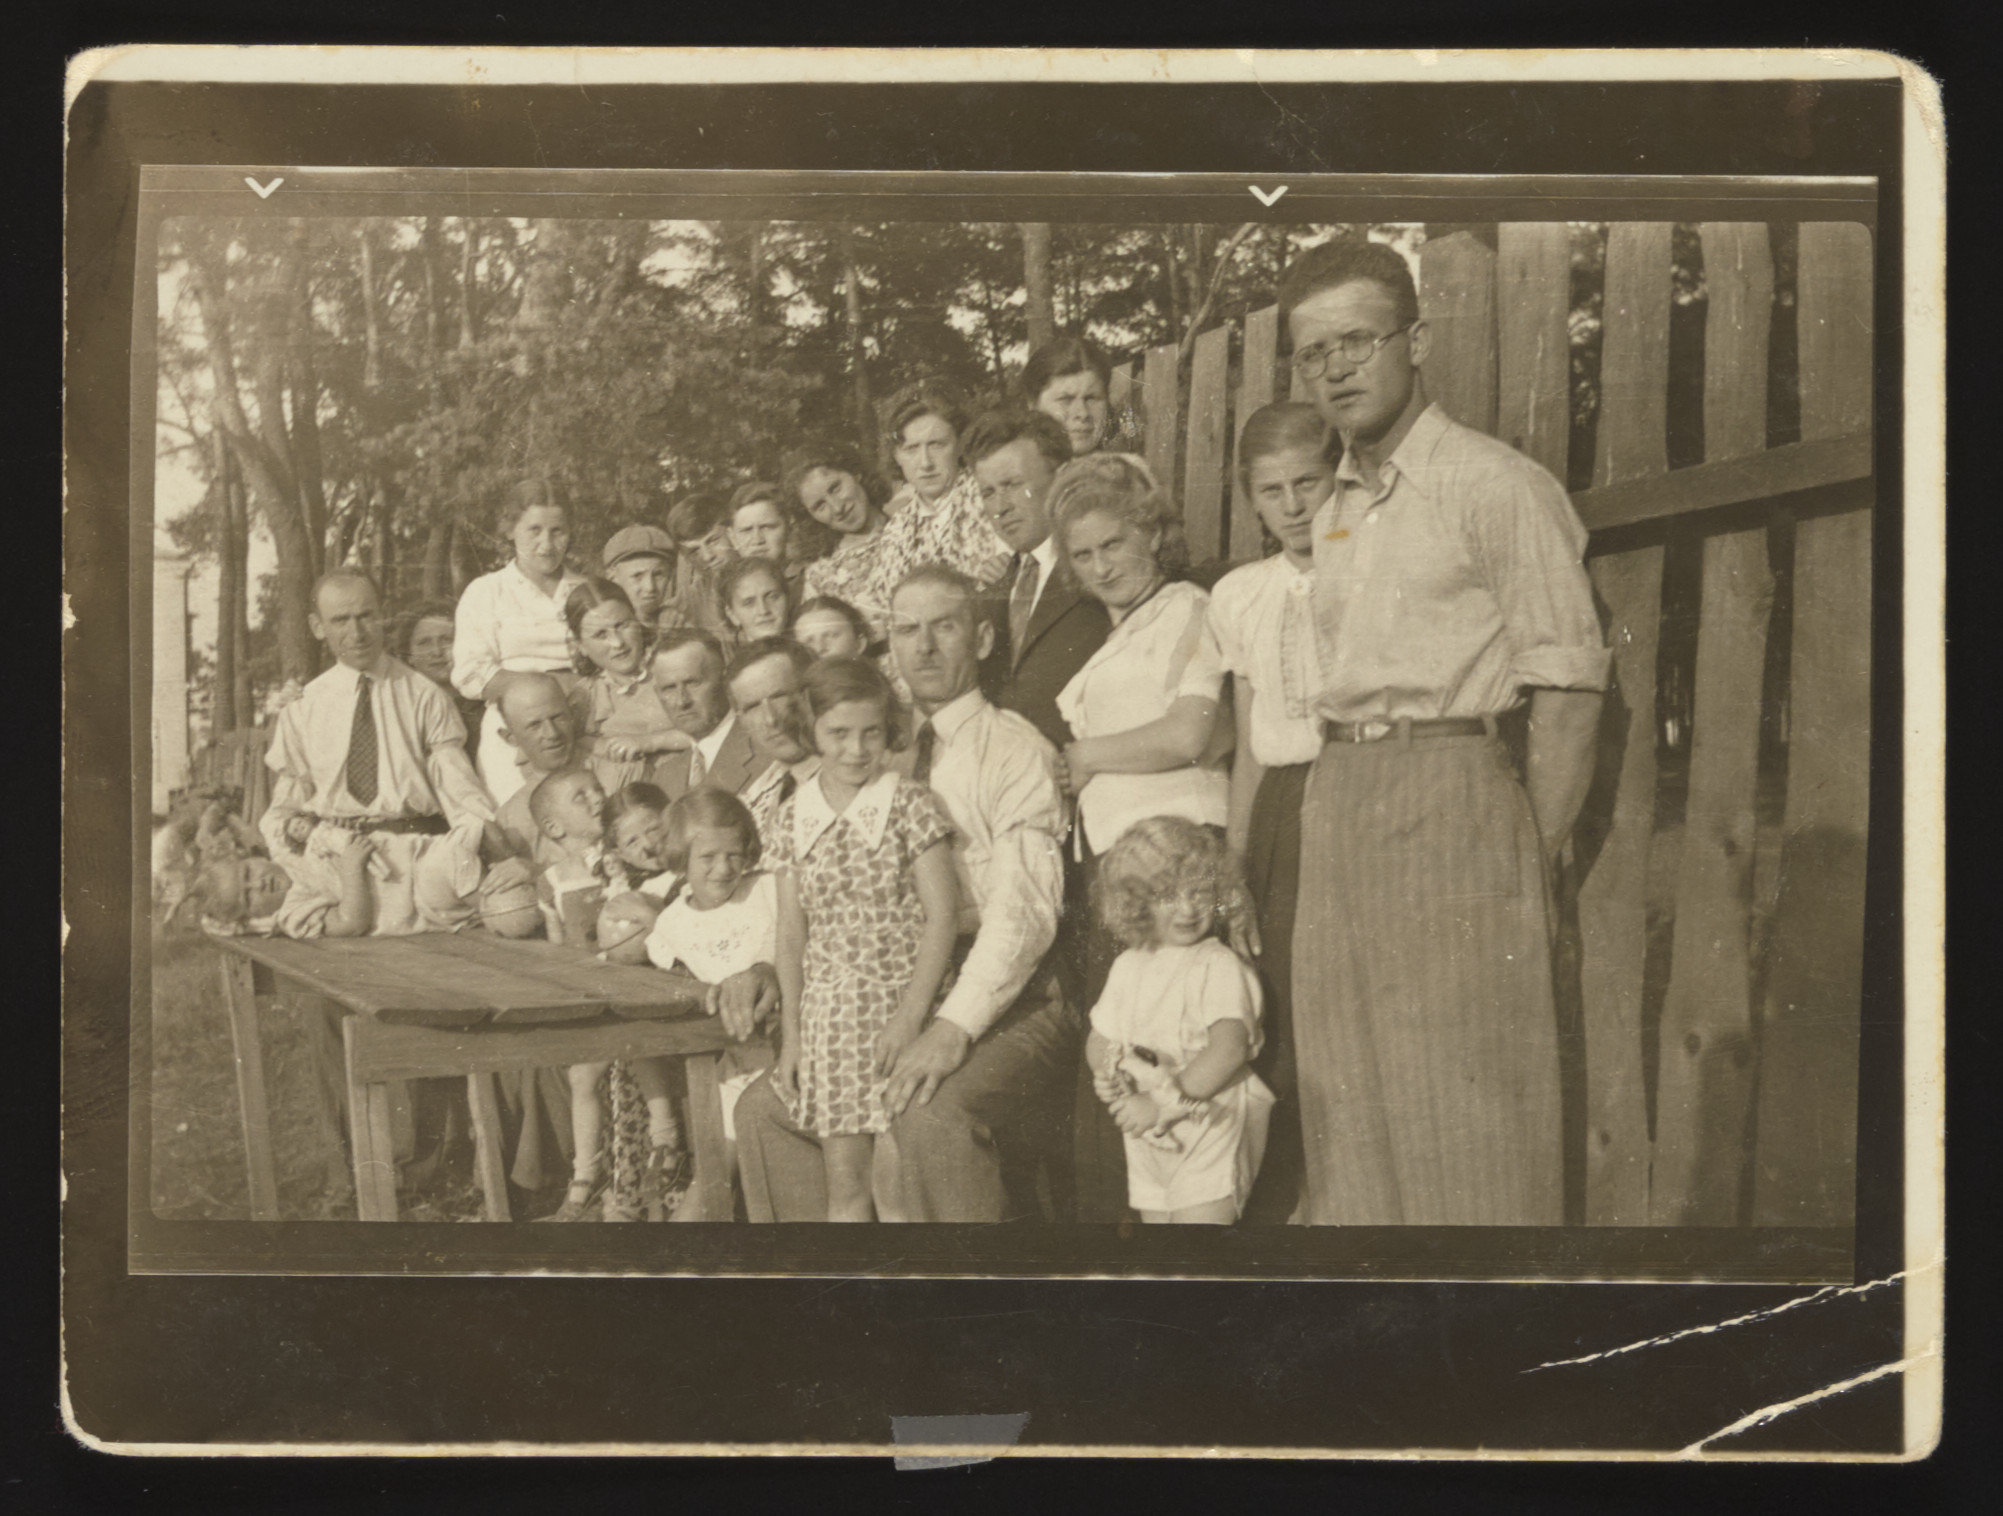 Group portrait of the Szabason family standing by a wooden fence in a yard in Kozienice on the occasion of a visit of Avrum Kestenberg from Colombia, South America.  Standing on the left is Mordechai Rubinsztajn (the donor's brother who perished in Treblinka).  The baby lying on the table is Geniusia Rubinsztajn who perished in Treblinka.  Standing second from the left is Chana Szabason Rubinsztajn who perished in Treblinka.  Seated second from the left is Zelig Szabason who perished and above him is Ruchl Szabason Rafalowicz who survived.  Avrum Szabason is seated first from right; Esther Szabason stands in front.  The little blond boy, Szaja Shau, survived in hiding and above him is Molly Szabason Shau who perished.  Lewek Szabason is standing on the far right, and his cousin Edzia Kestenberg who survived on false papers is next to him.